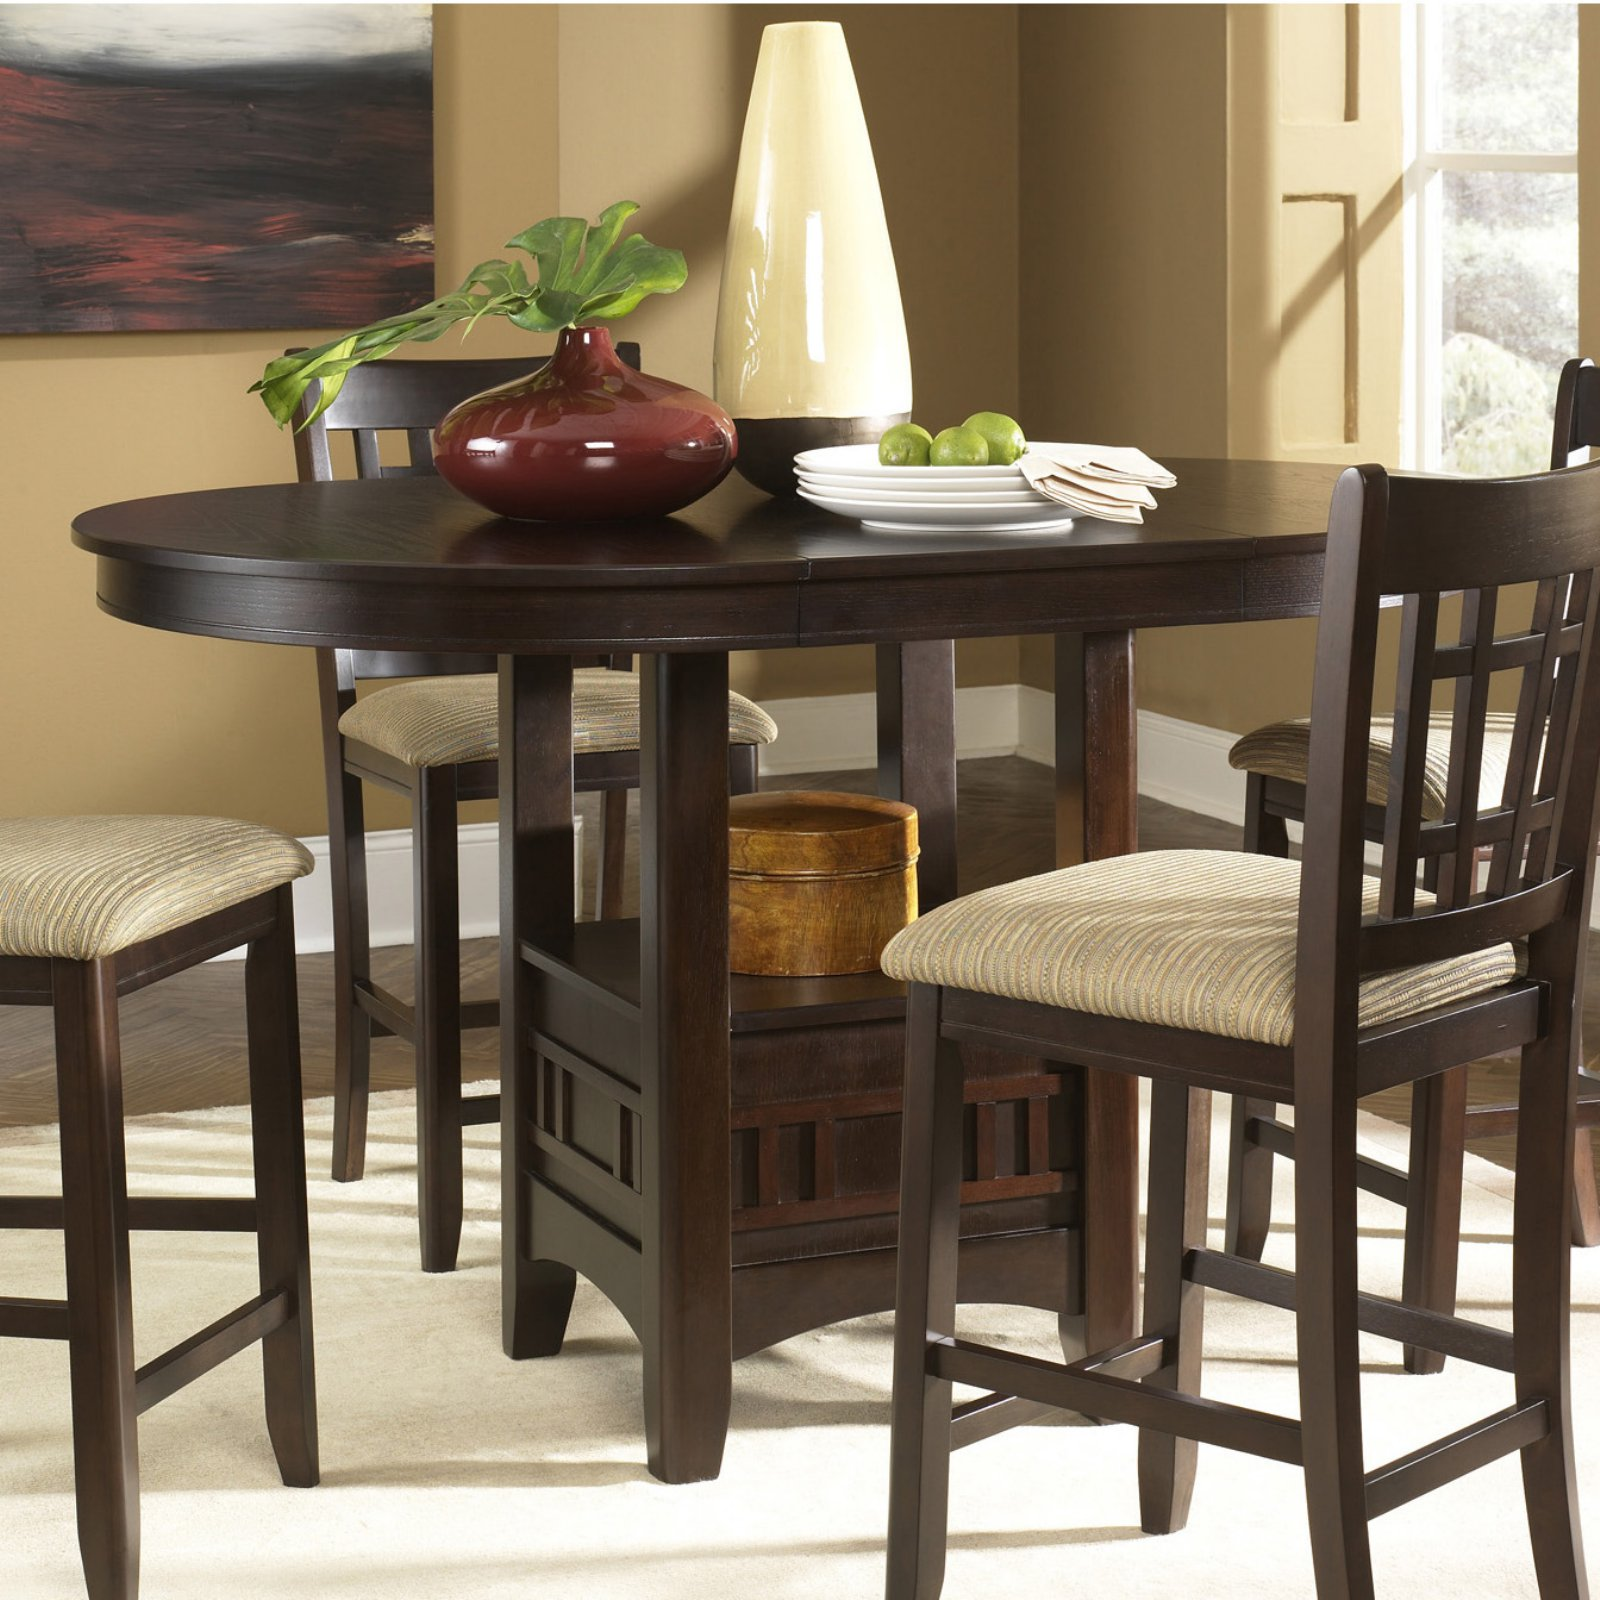 Liberty Furniture Santa Rosa Merlot Counter Height Dining Table